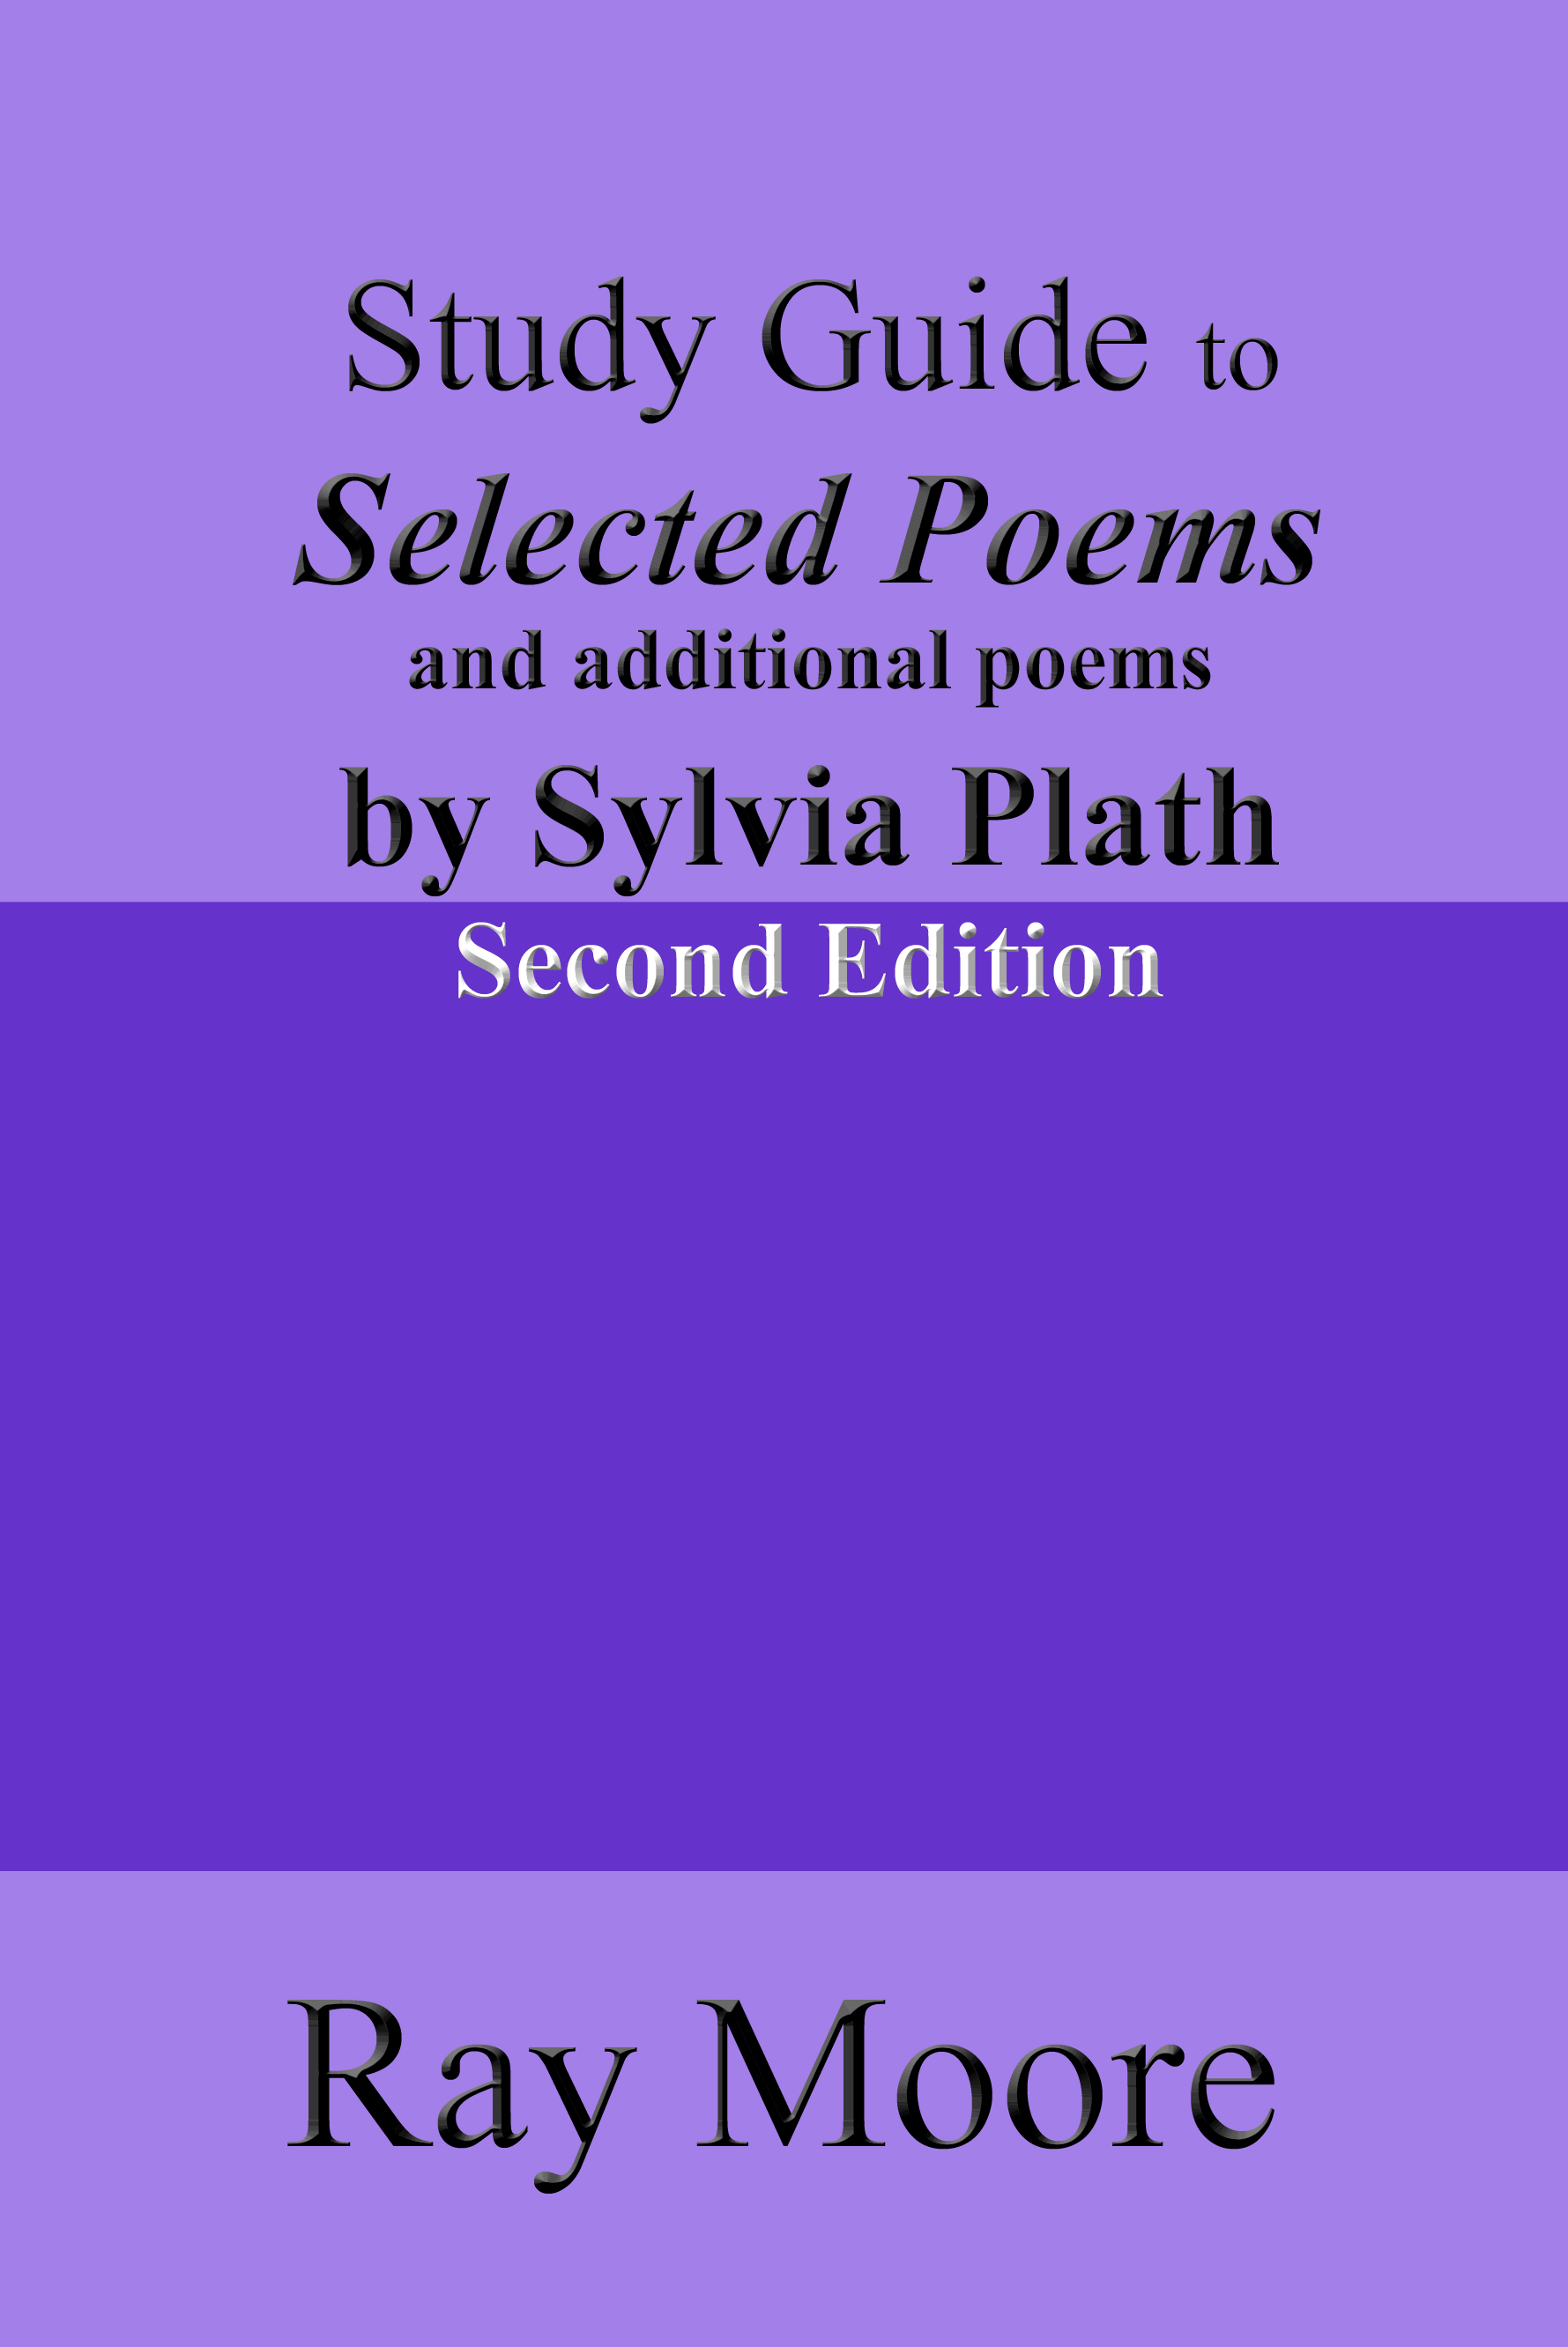 an introduction to the poetry by sylvia plath and the varied interpretations of various poems